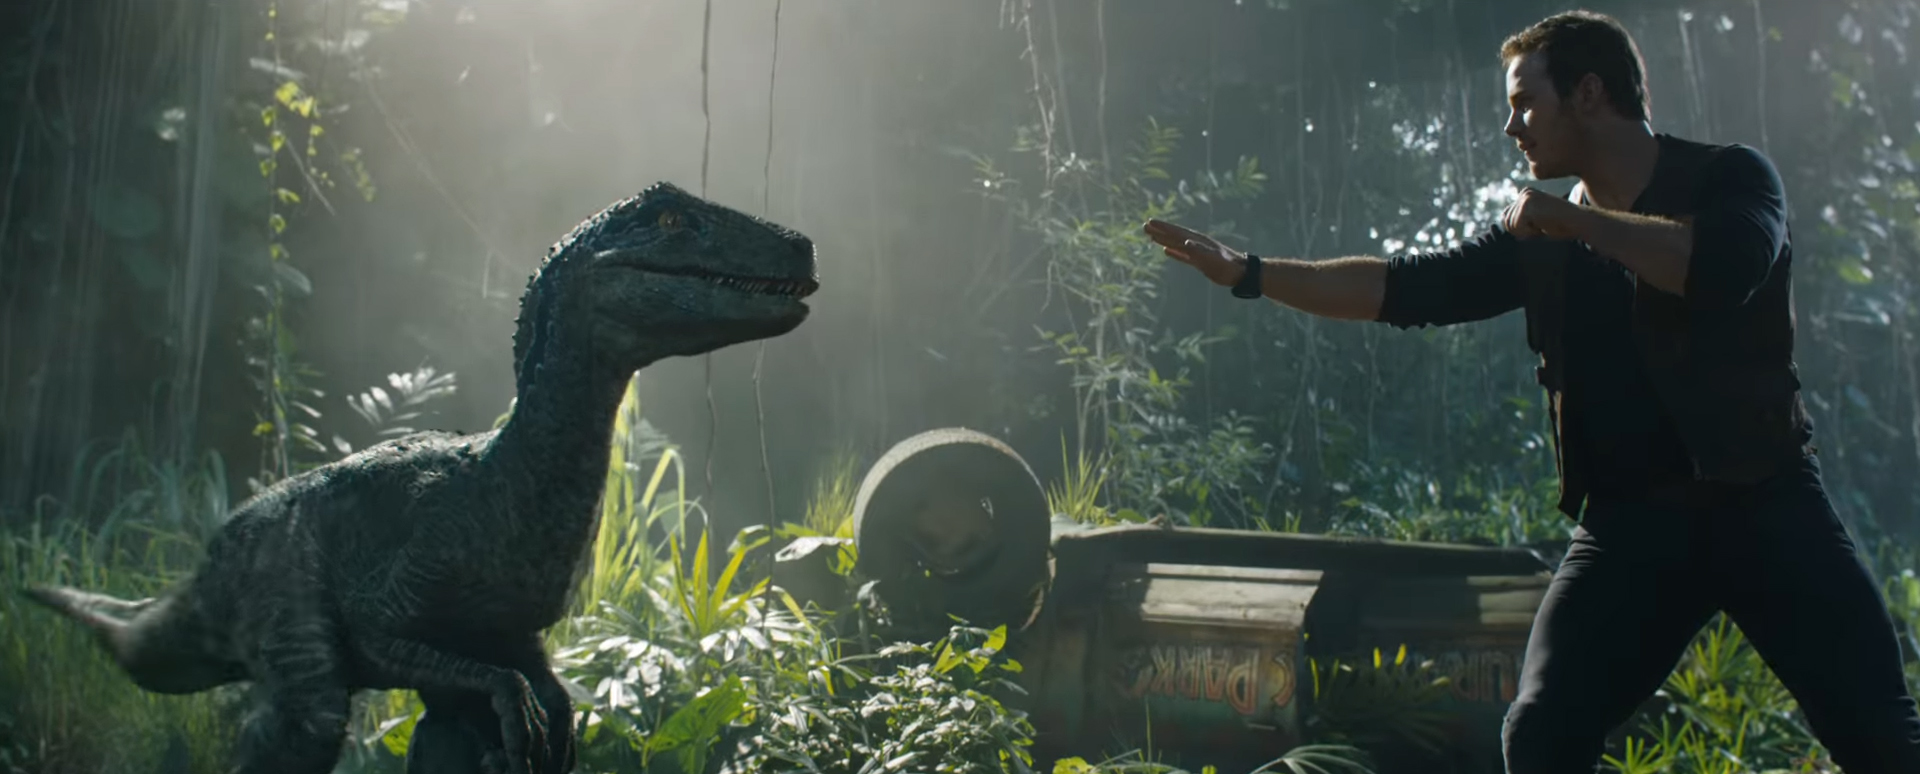 Jurassic World Fallen Kingdom. Image Credit: Universal/Legendary